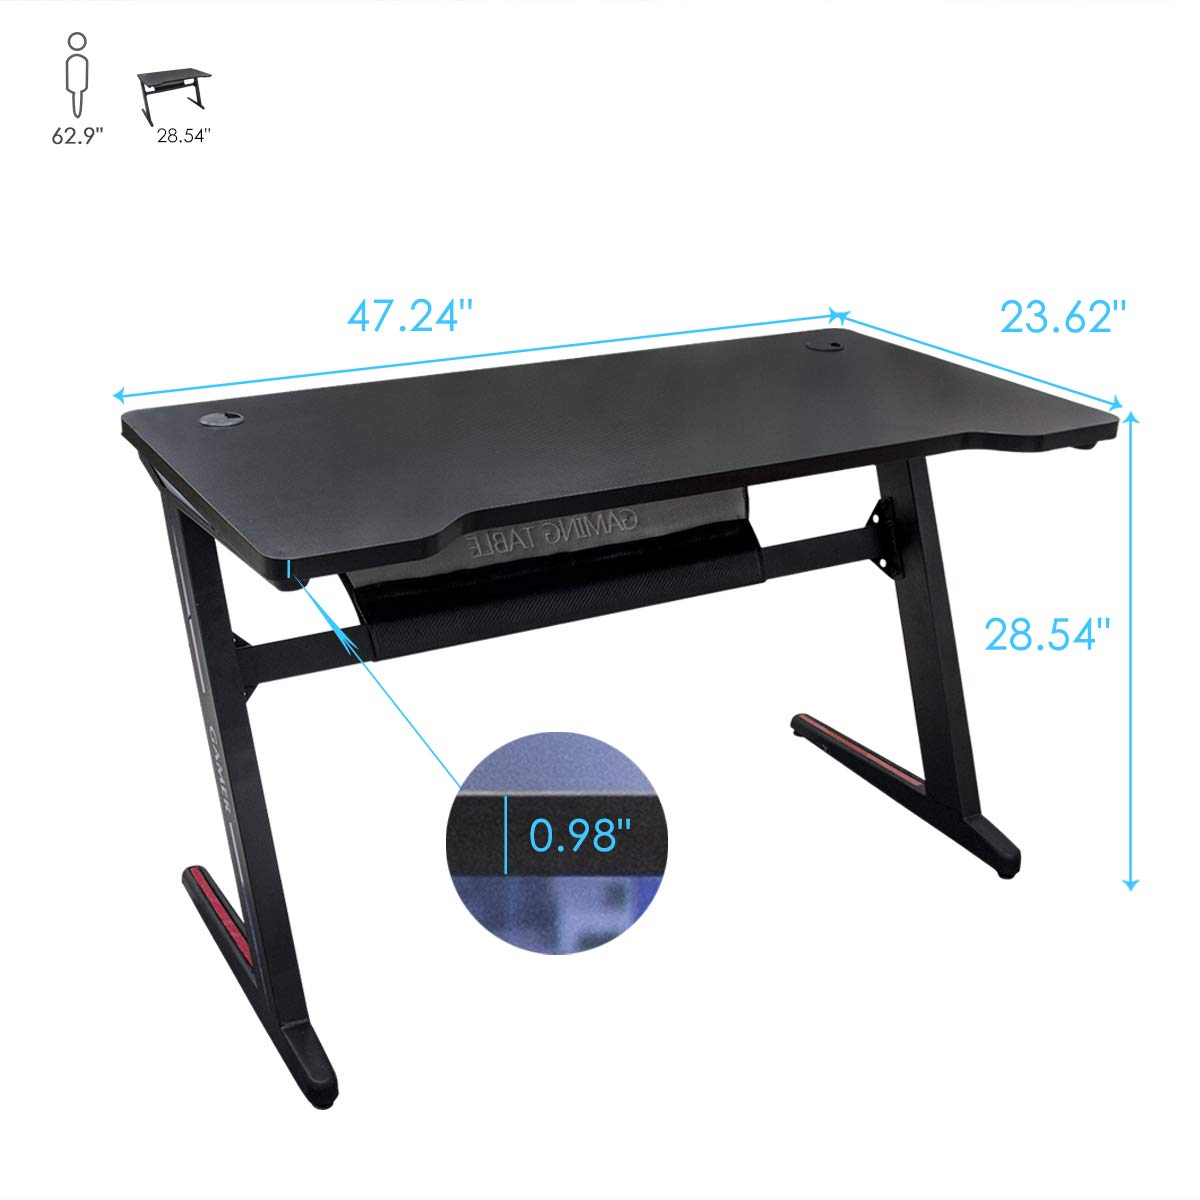 Gaming Desk Computer Table Z Shape, Bizzoelife E Sports Racing Table with LED Light Ergonomic Comfortable Height (47 Inches) by Bizzoelife (Image #5)